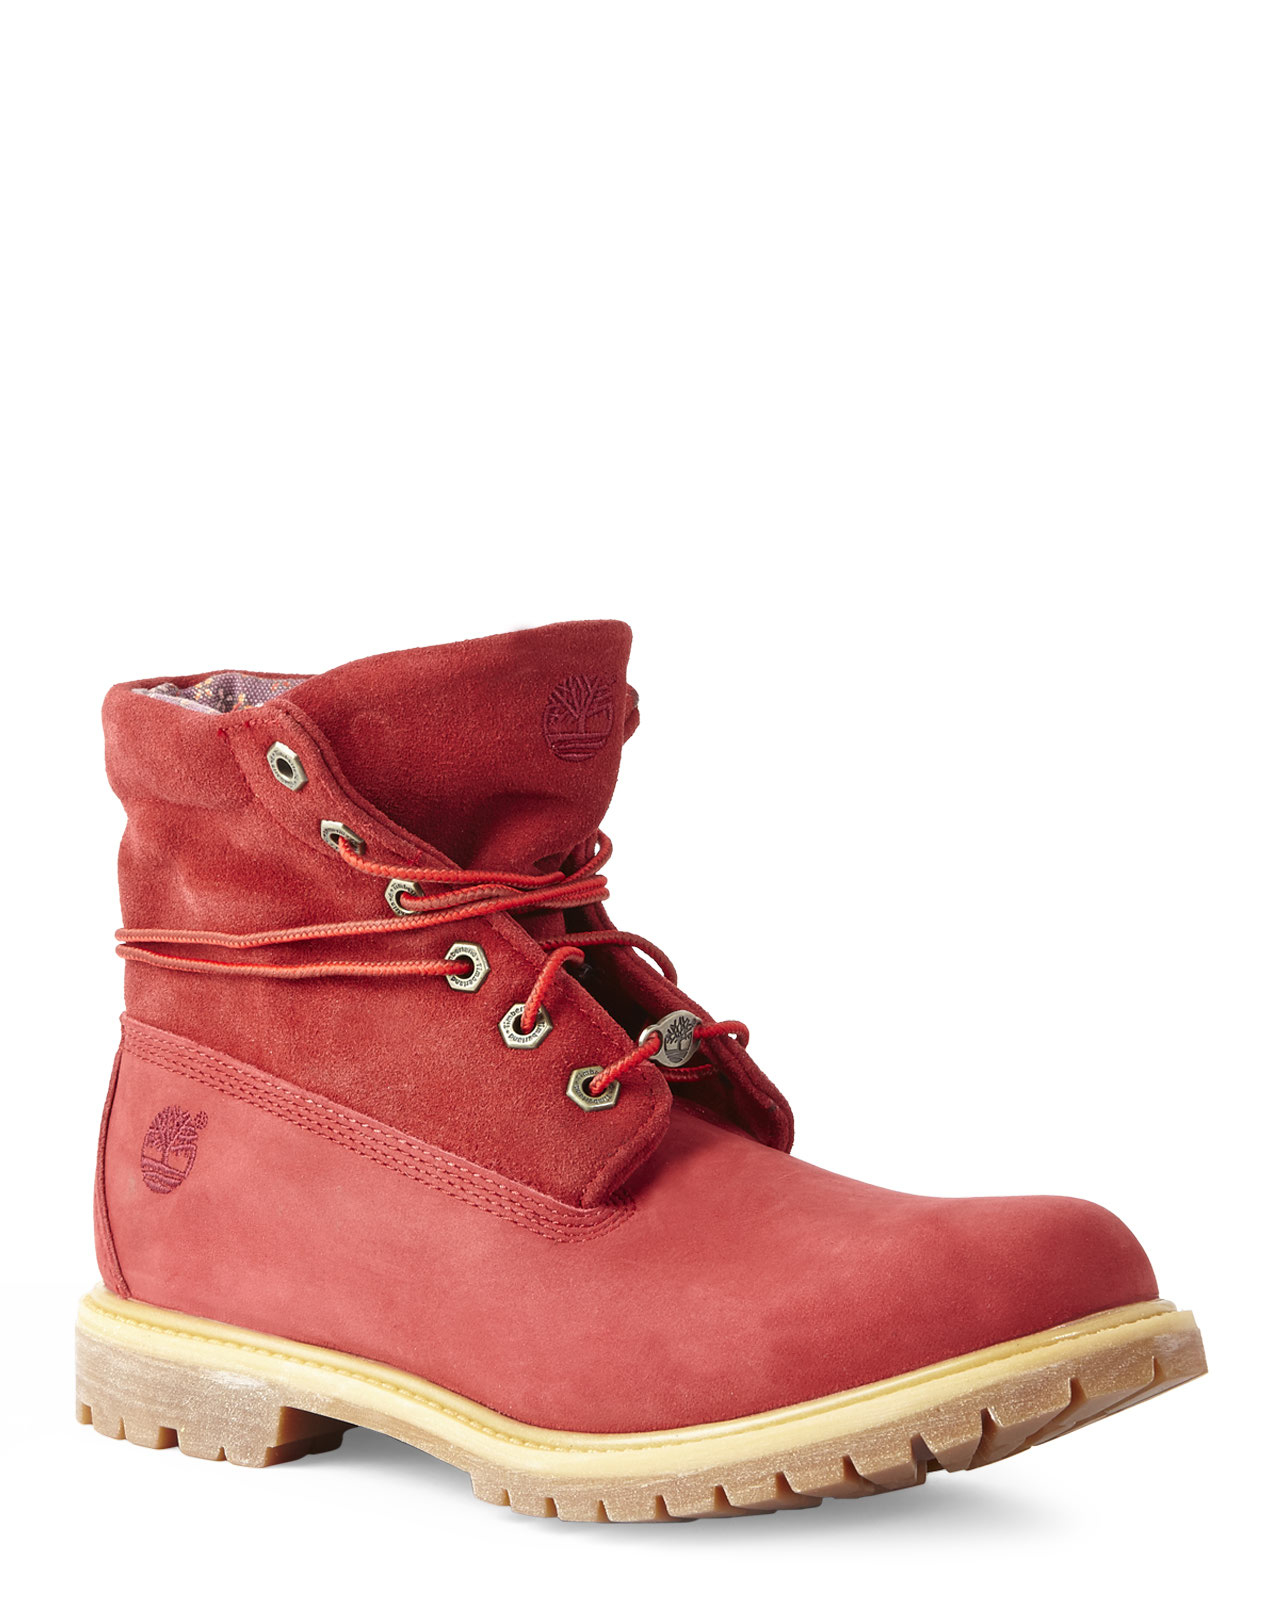 Lyst - Timberland Red Authentics Roll-Down Boots in Red